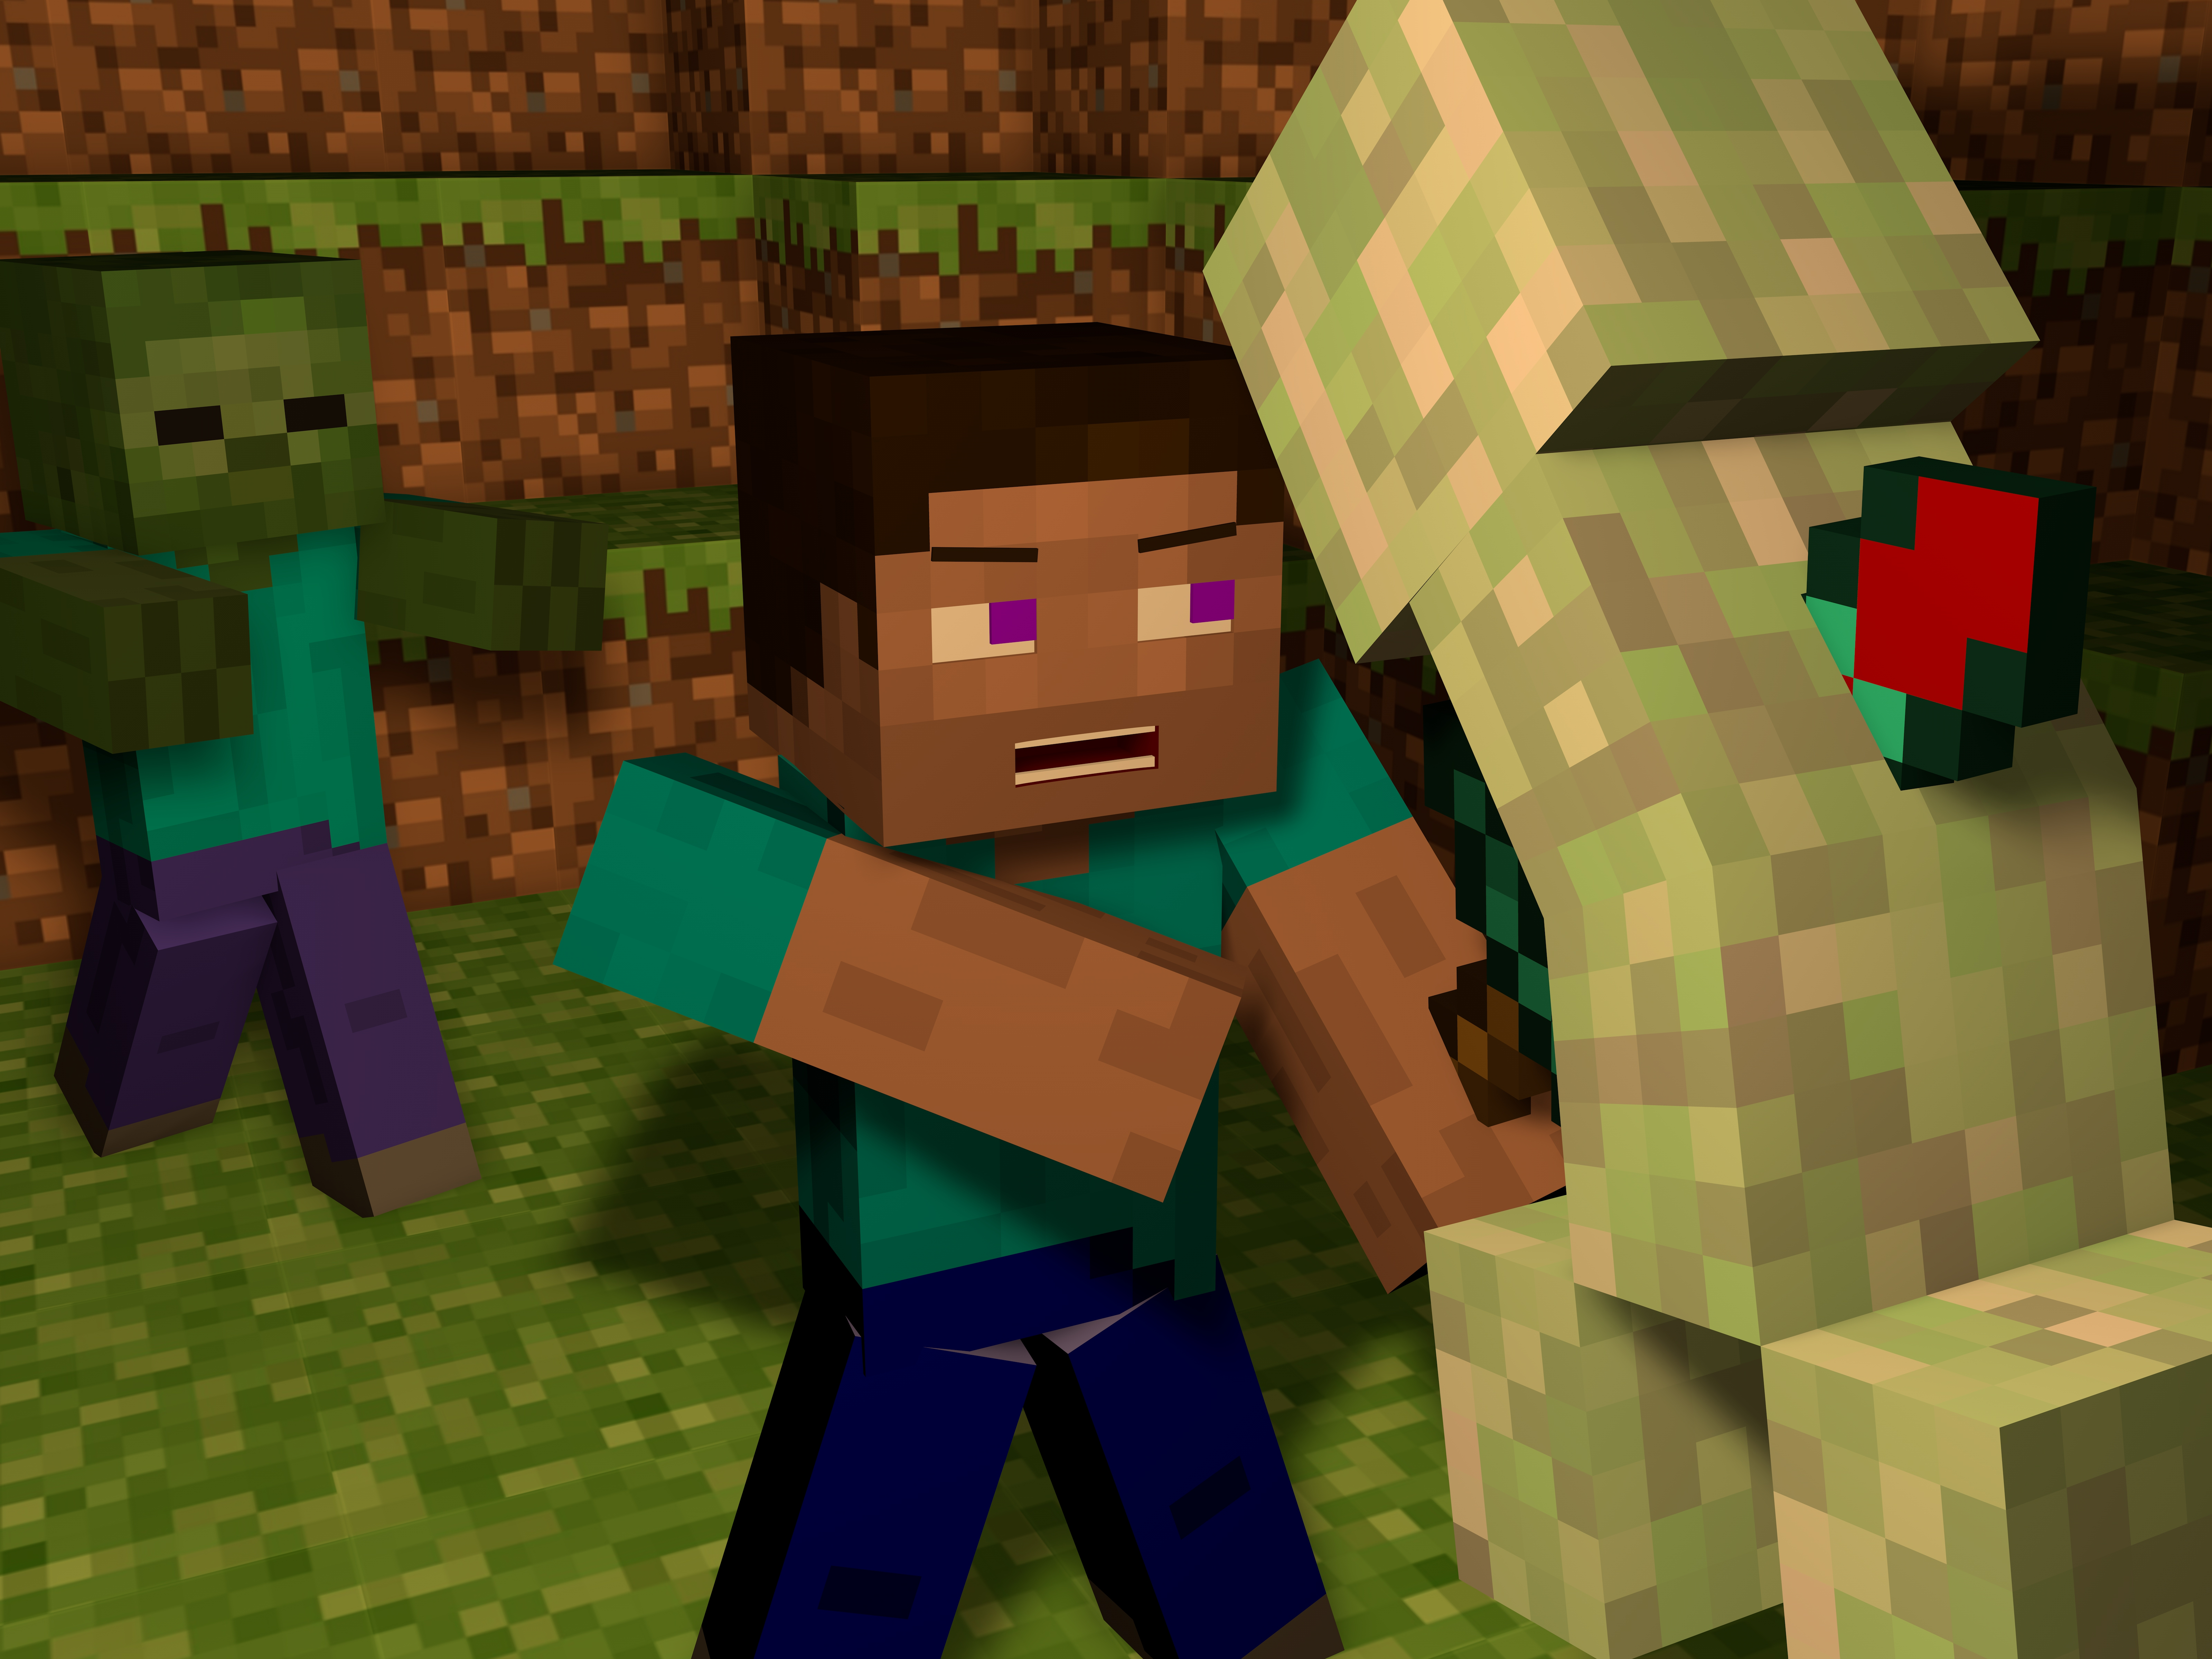 Steve minecraft wallpapers cake ideas and designs - Minecraft creeper and steve ...